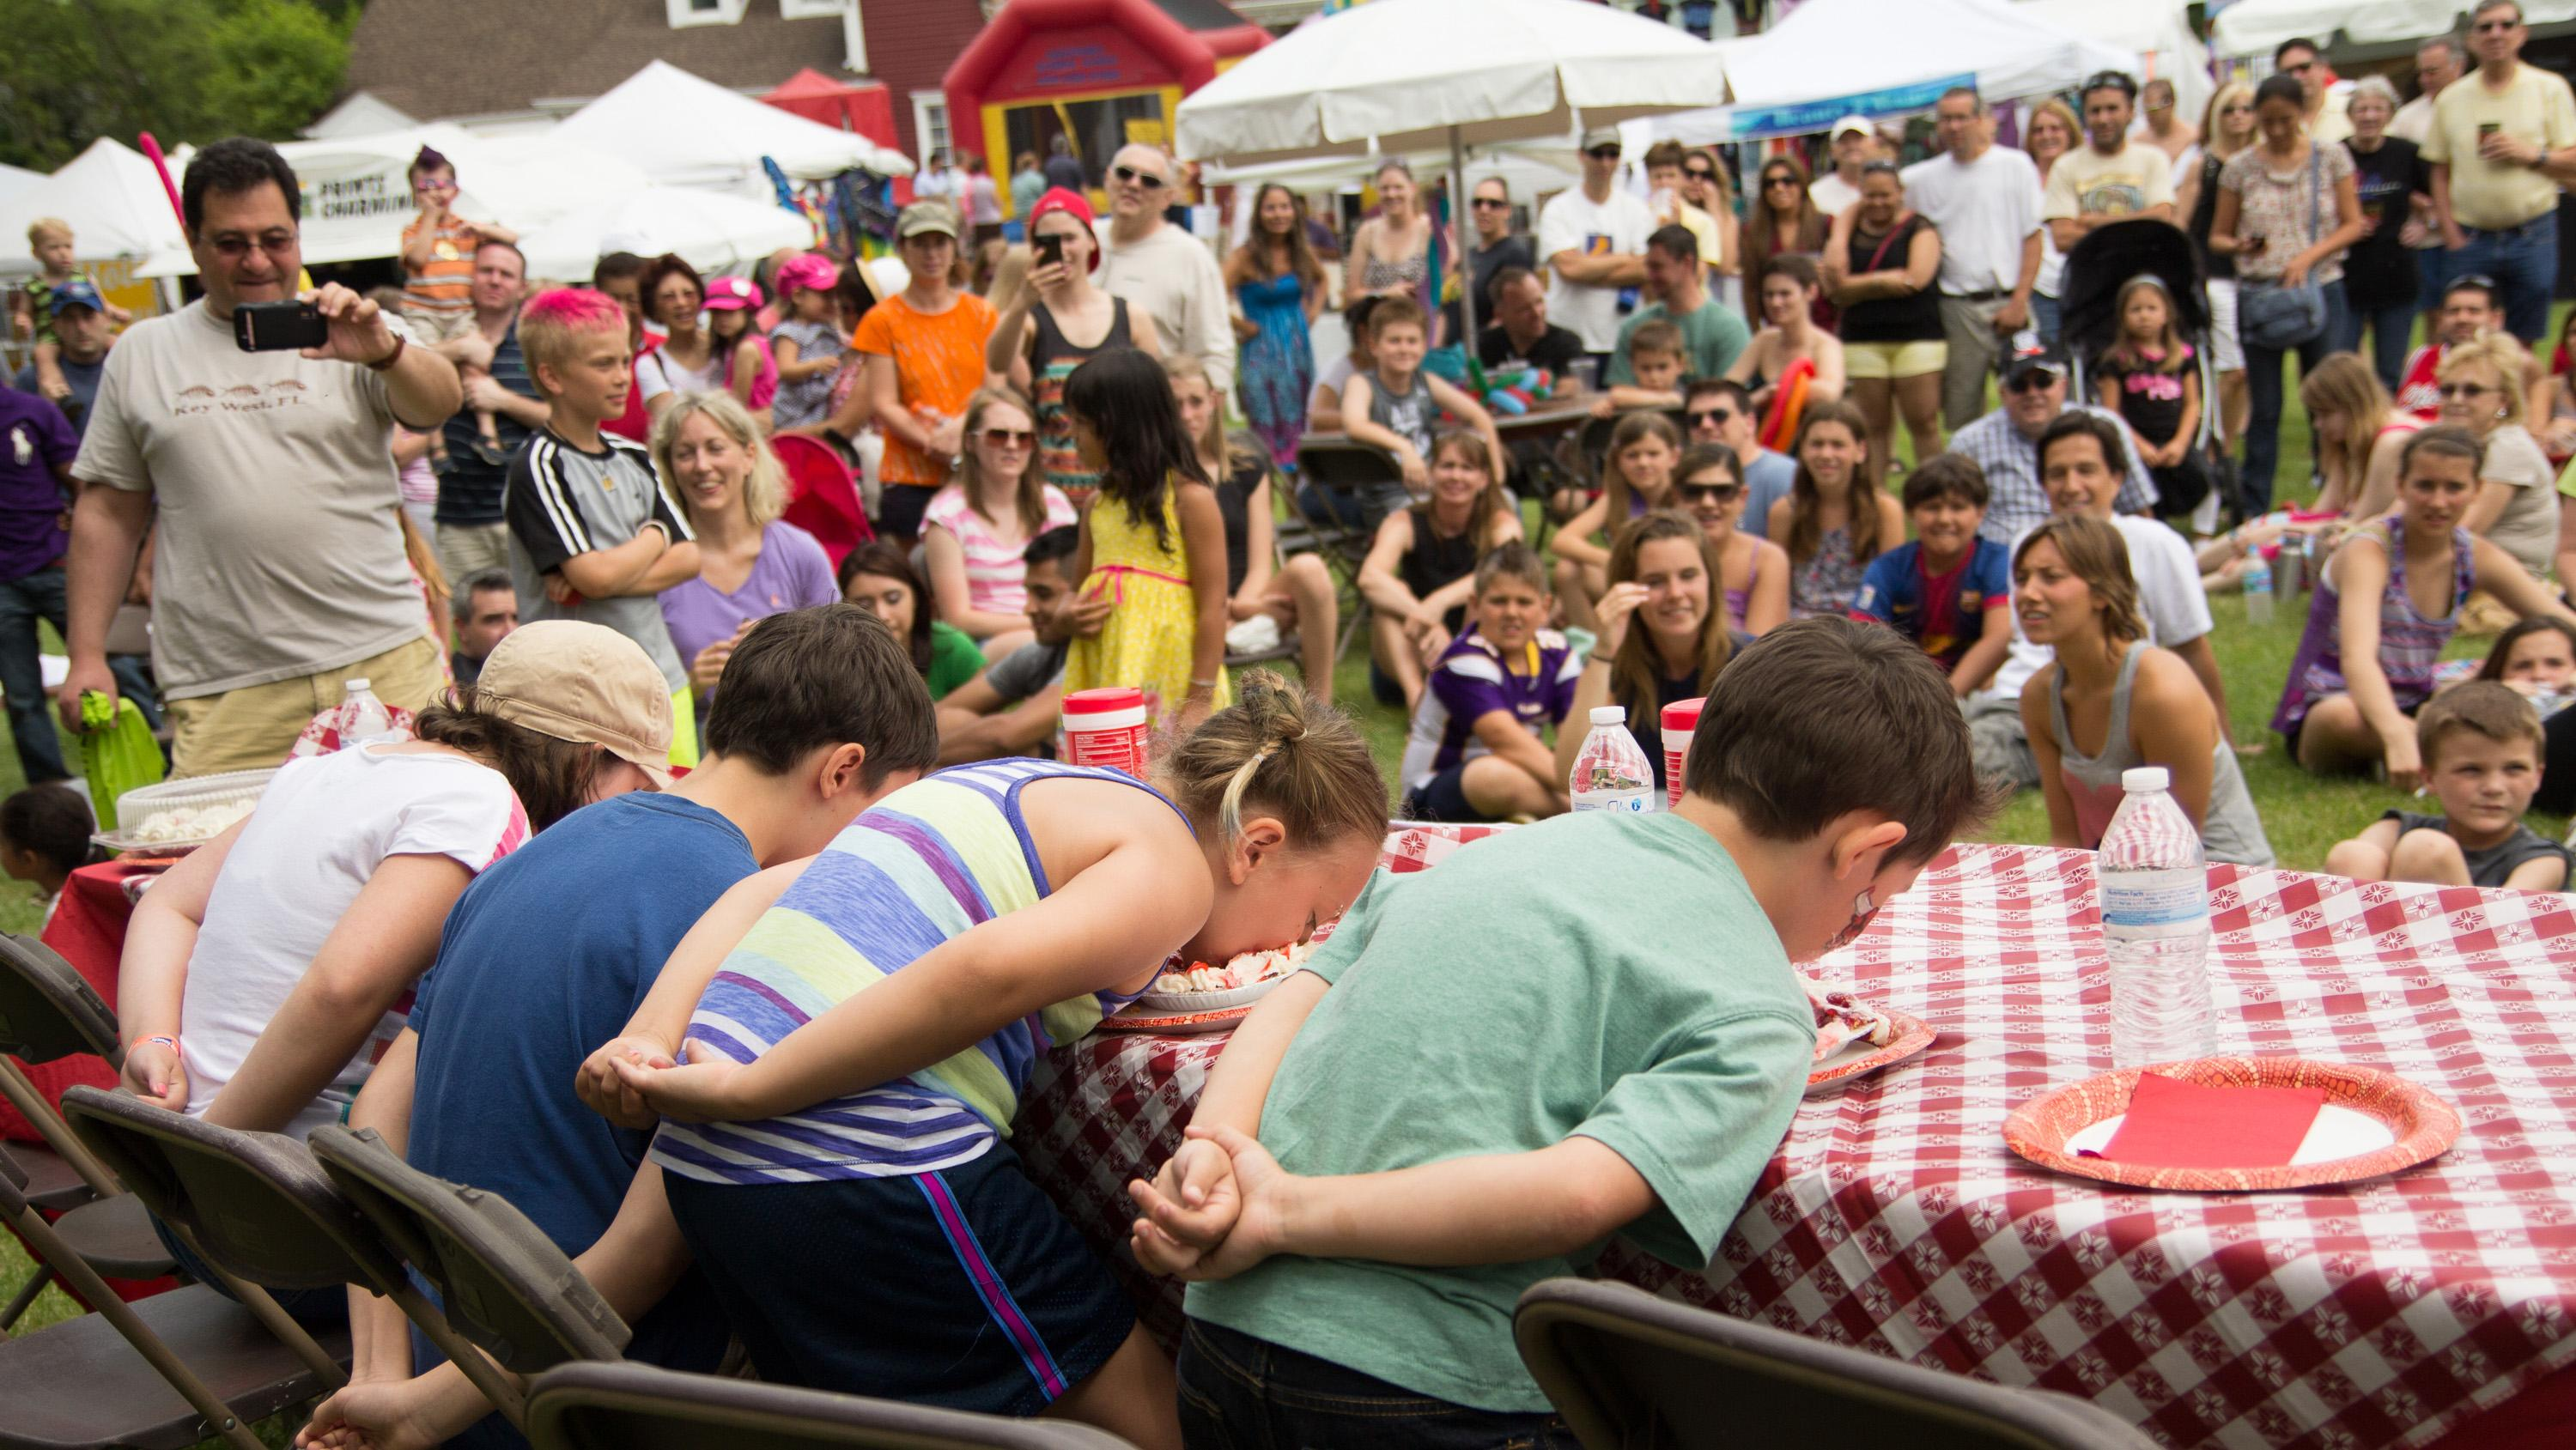 A strawberry pie-eating festival takes place at Strawberry Fest. (Courtesy of Jody Grimaldi)